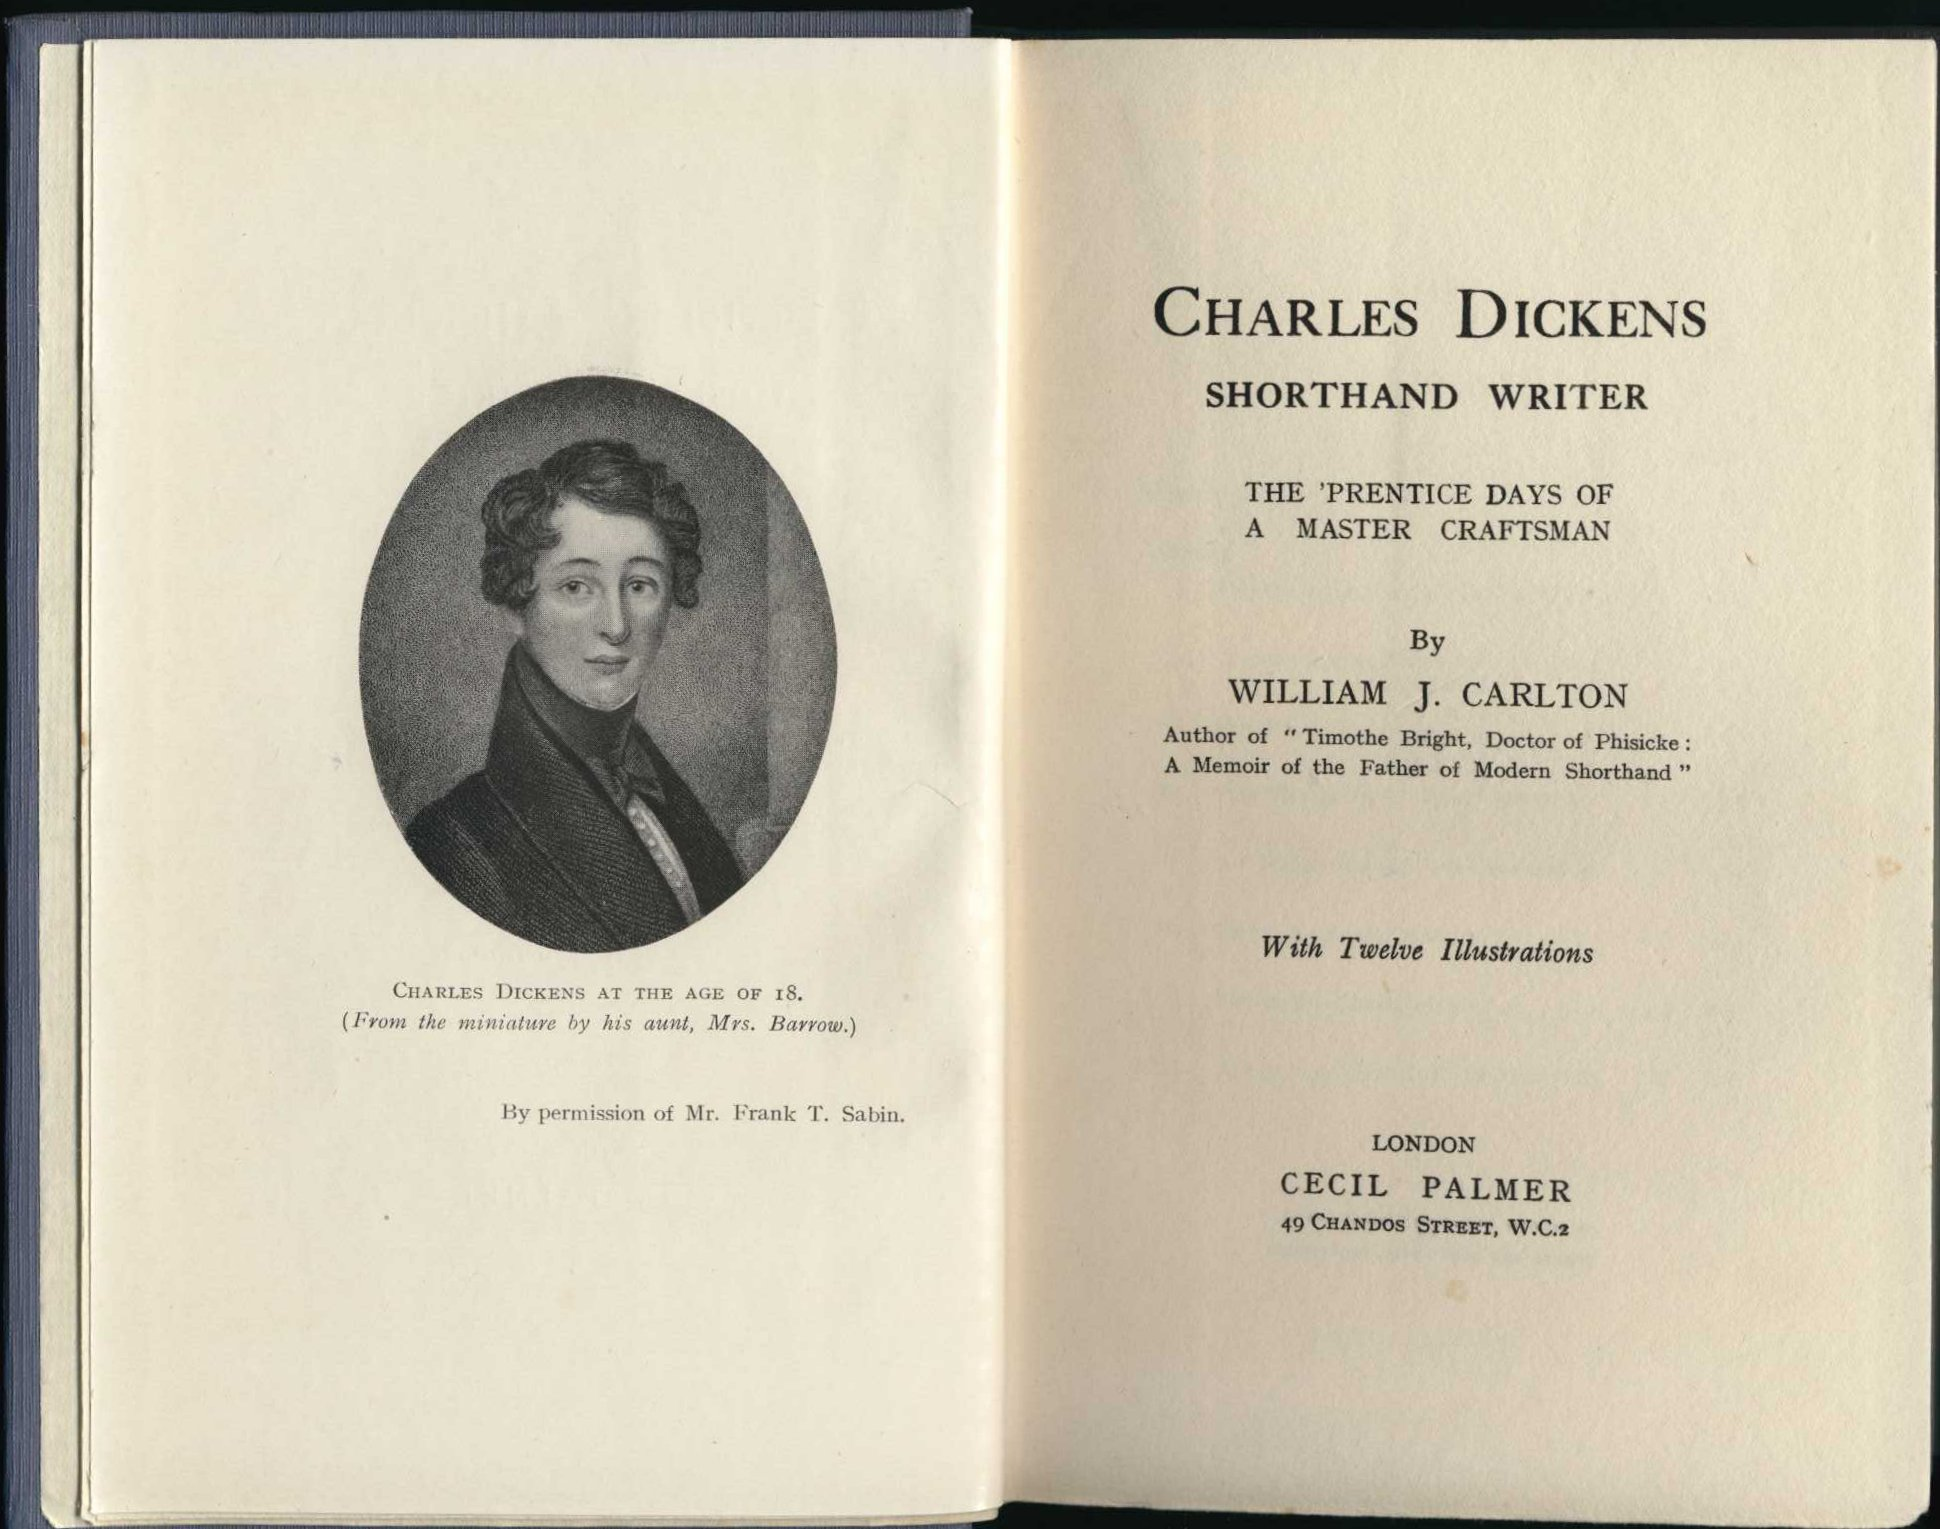 William J. Carlton. Charles Dickens, shorthand writer: the 'prentice days of a master craftsman. London: Cecil Palmer, 1926.